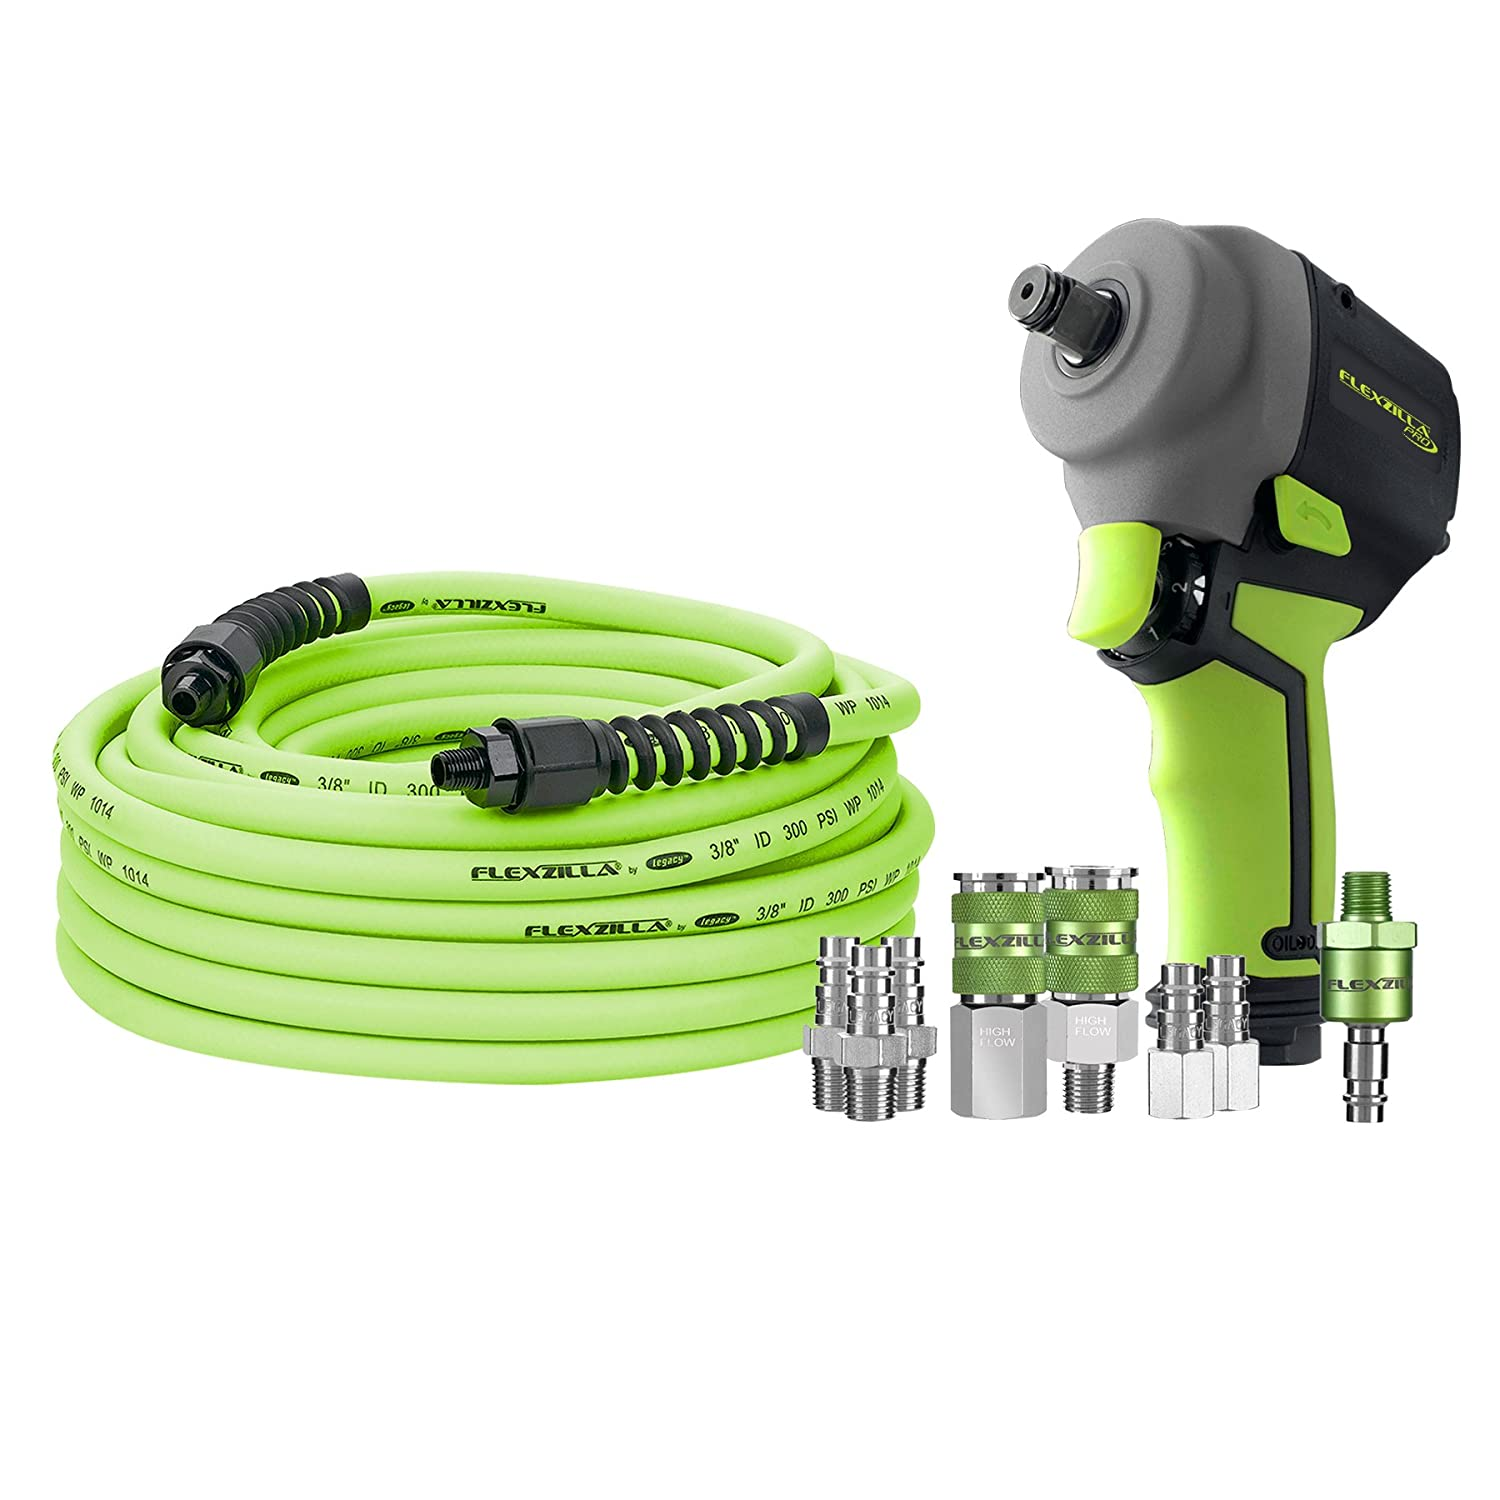 Flexzilla AT8505FZ Mini Impact Wrench Kit